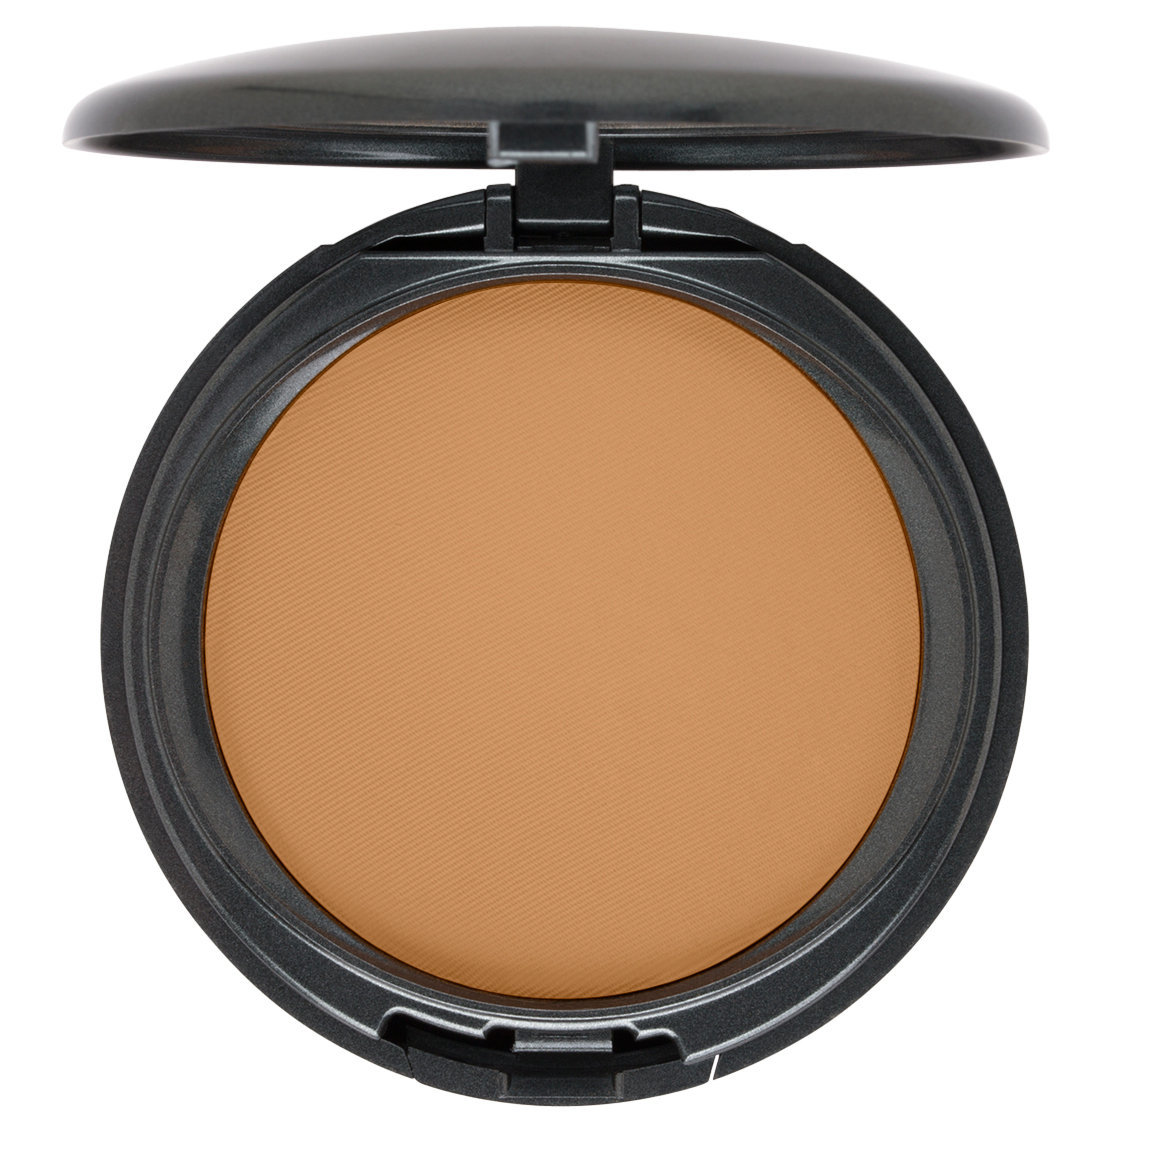 COVER | FX Pressed Mineral Foundation G50 product swatch.